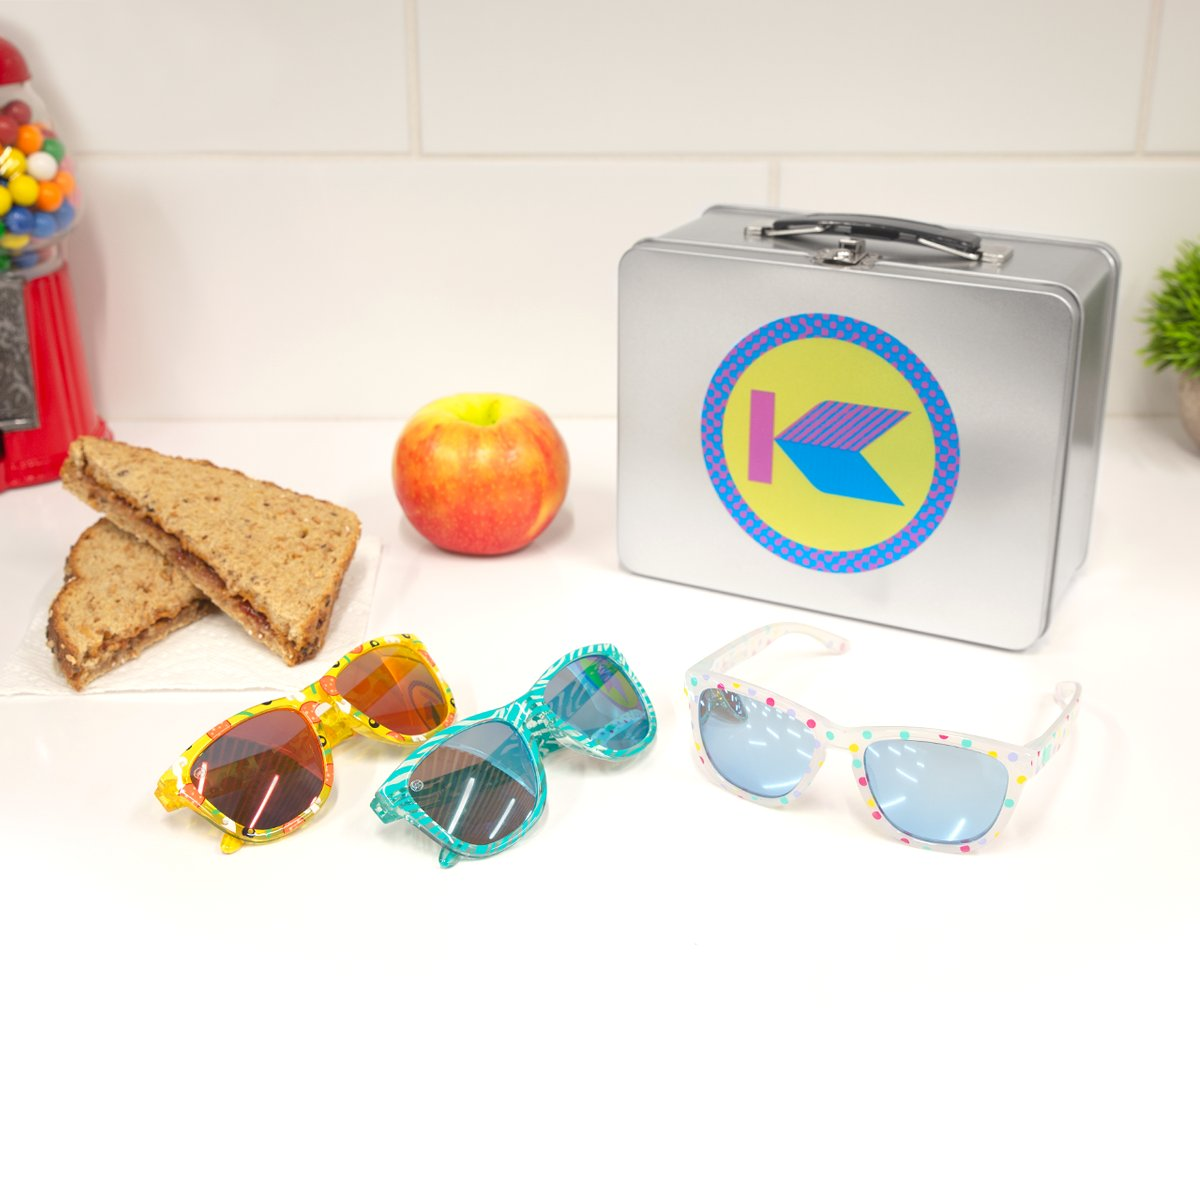 caea414a8fde ... Kids Premiums—the Little Knocks Lunch Box is fresher than any sliced  oranges you would ve put in your kiddos brown bag lunch.